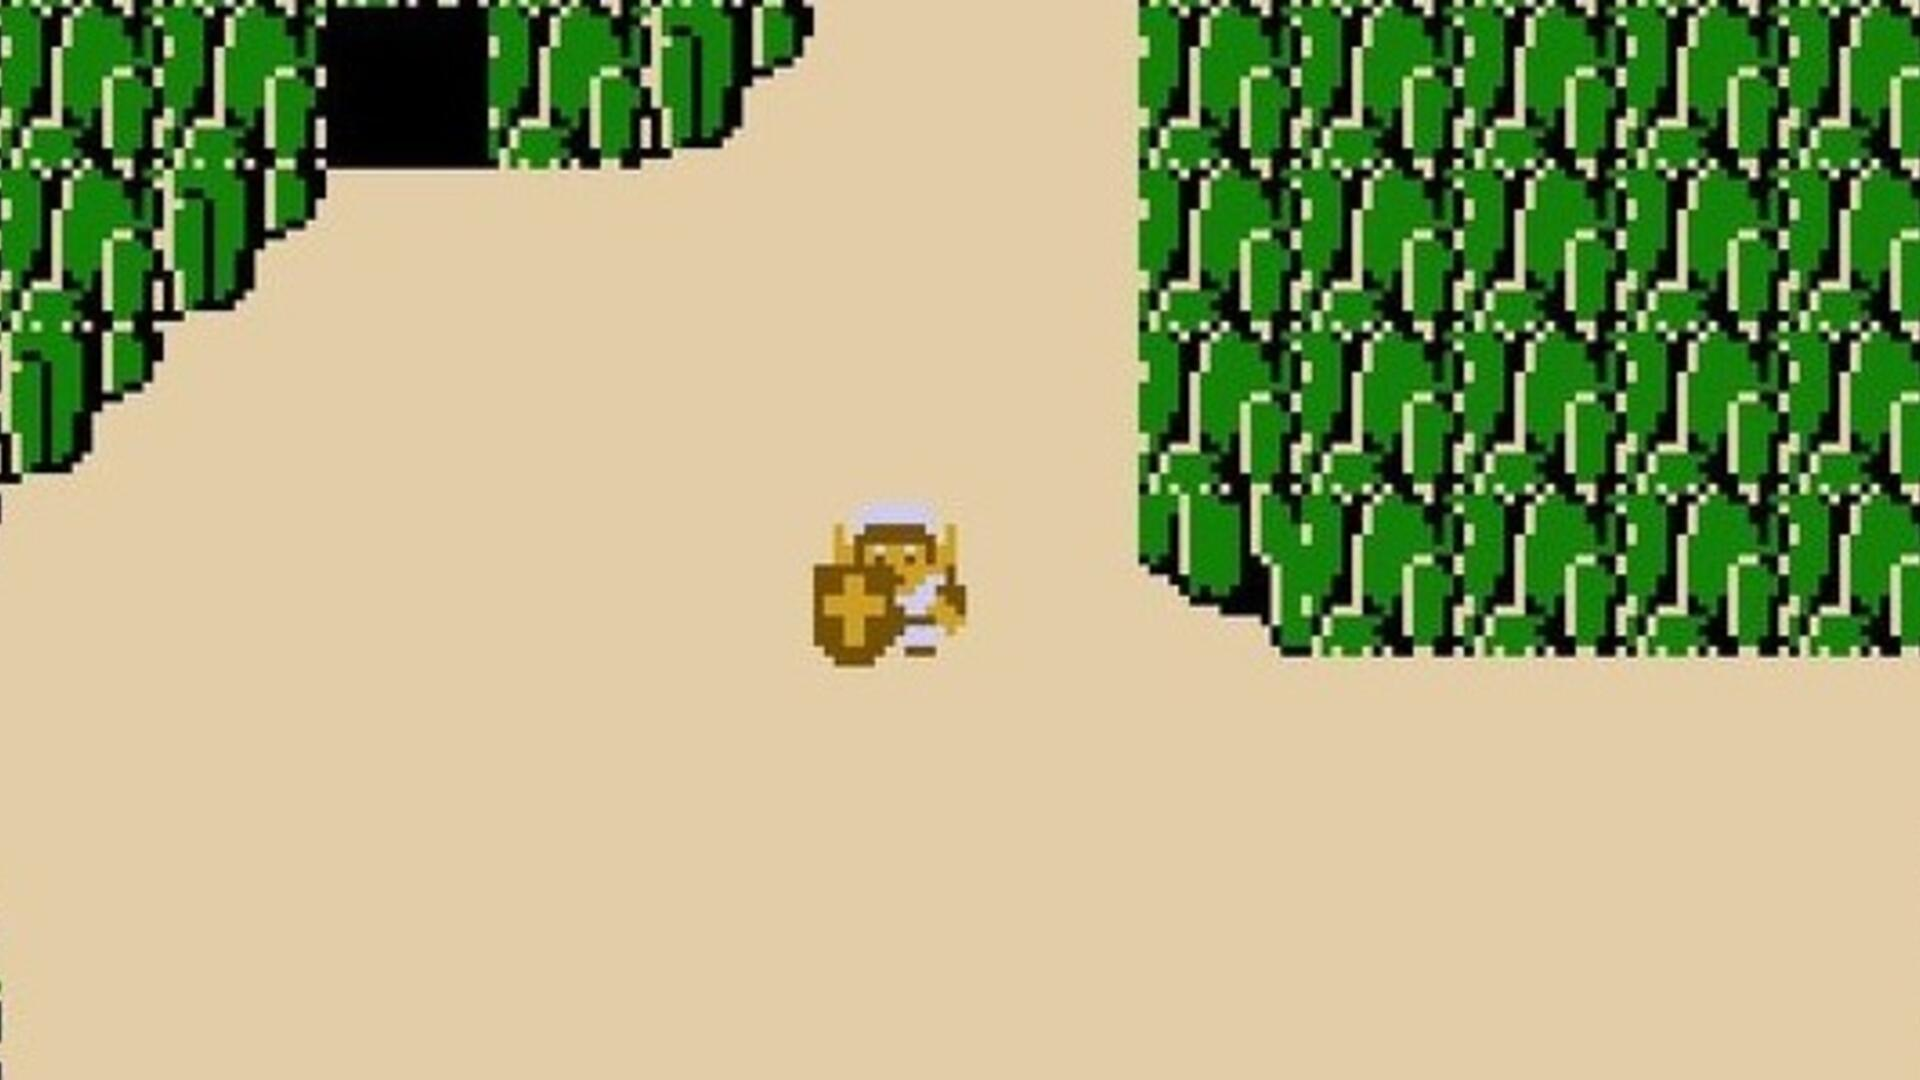 Easy 'ROM Hack' Version of The Legend of Zelda Added to